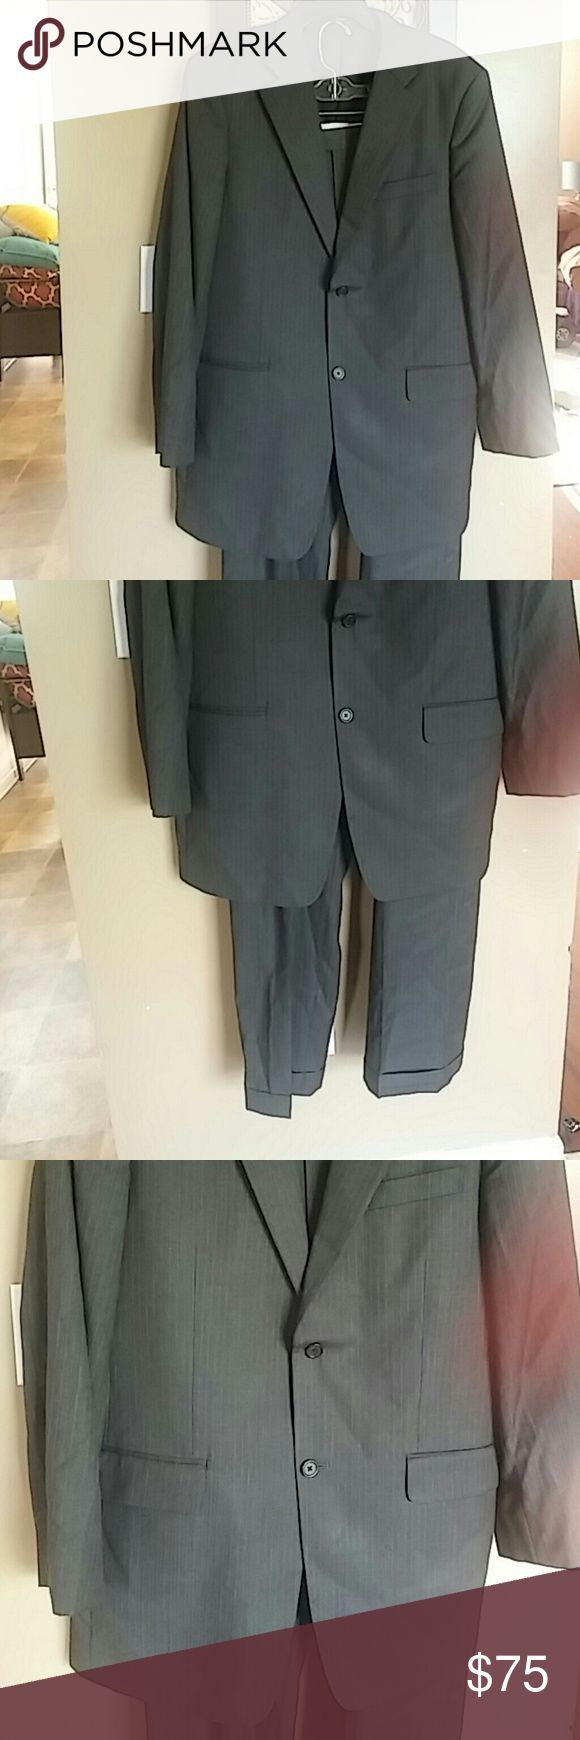 Executive Style John W. Nordstrom Suit This listing is for a Gray hue with faint vertical stripe john w. Nordstrom suit. Suit Tags reflect 42L/W36 but my measurements are as follows: Pants 41.5 in. Length, 18 in. Waist & The Jacket is 24.7 in. in the sleeve, 35 in. shoulder to hem and armpit to armpit is 20.5 in.. John W. Nordstrom Suits & Blazers